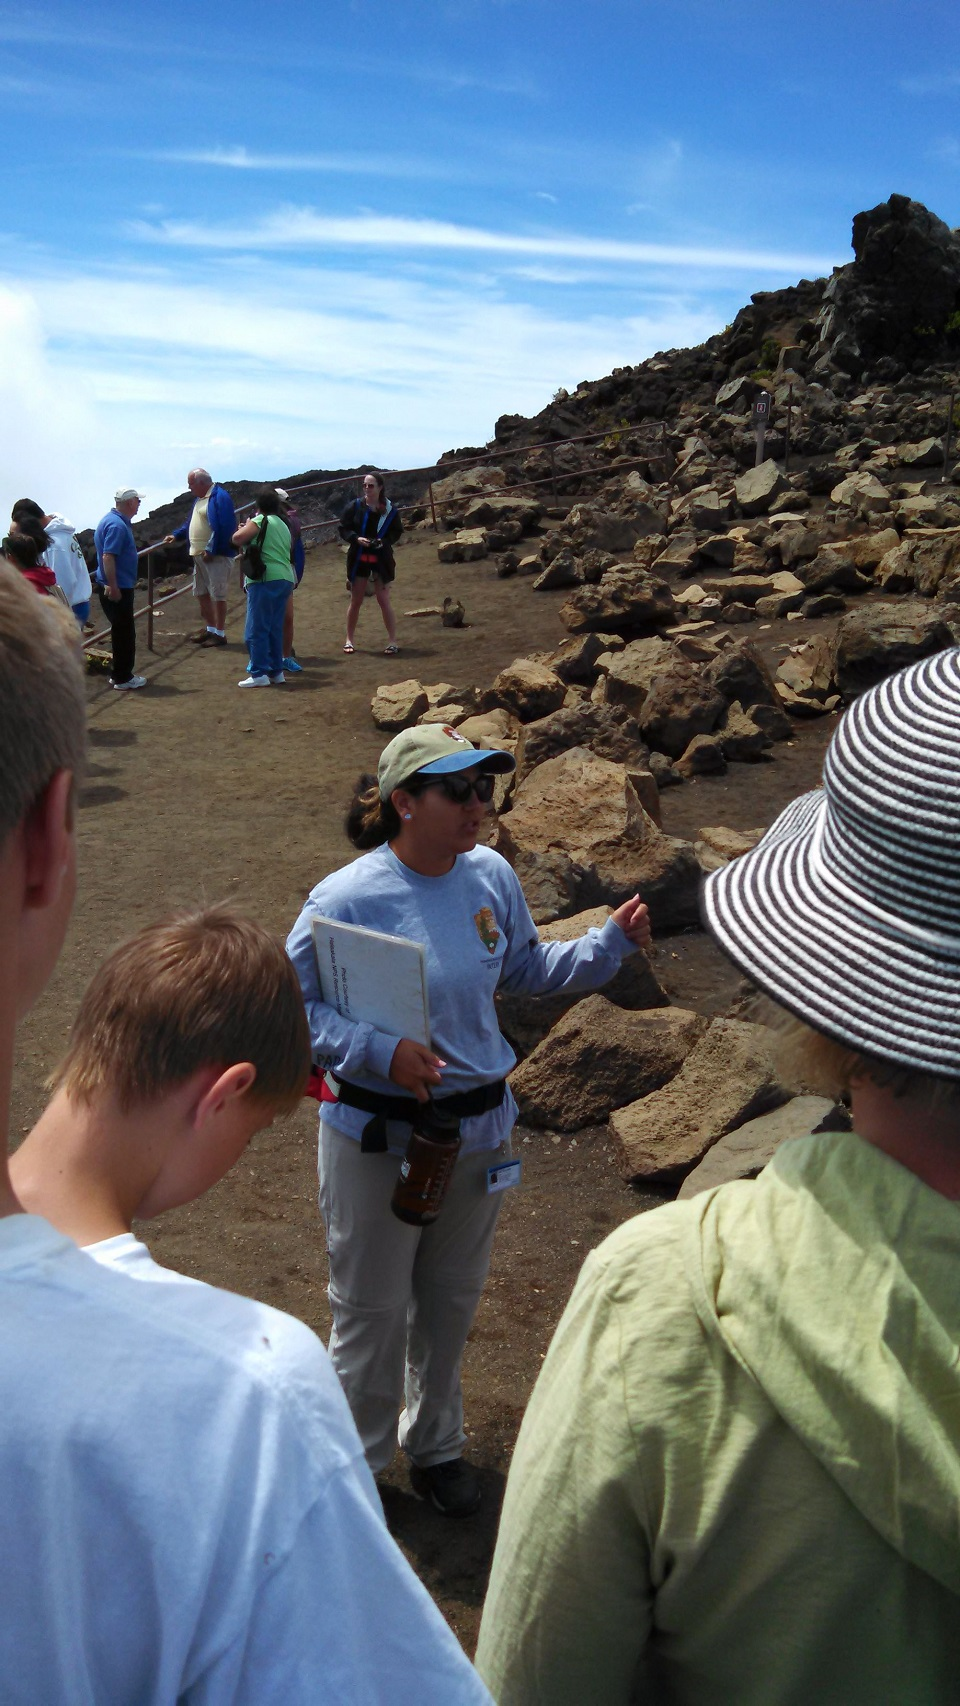 Former Visitor Services volunteer Emily Fernandes leads a walk by the crater overlook, at 9741 feet of elevation.